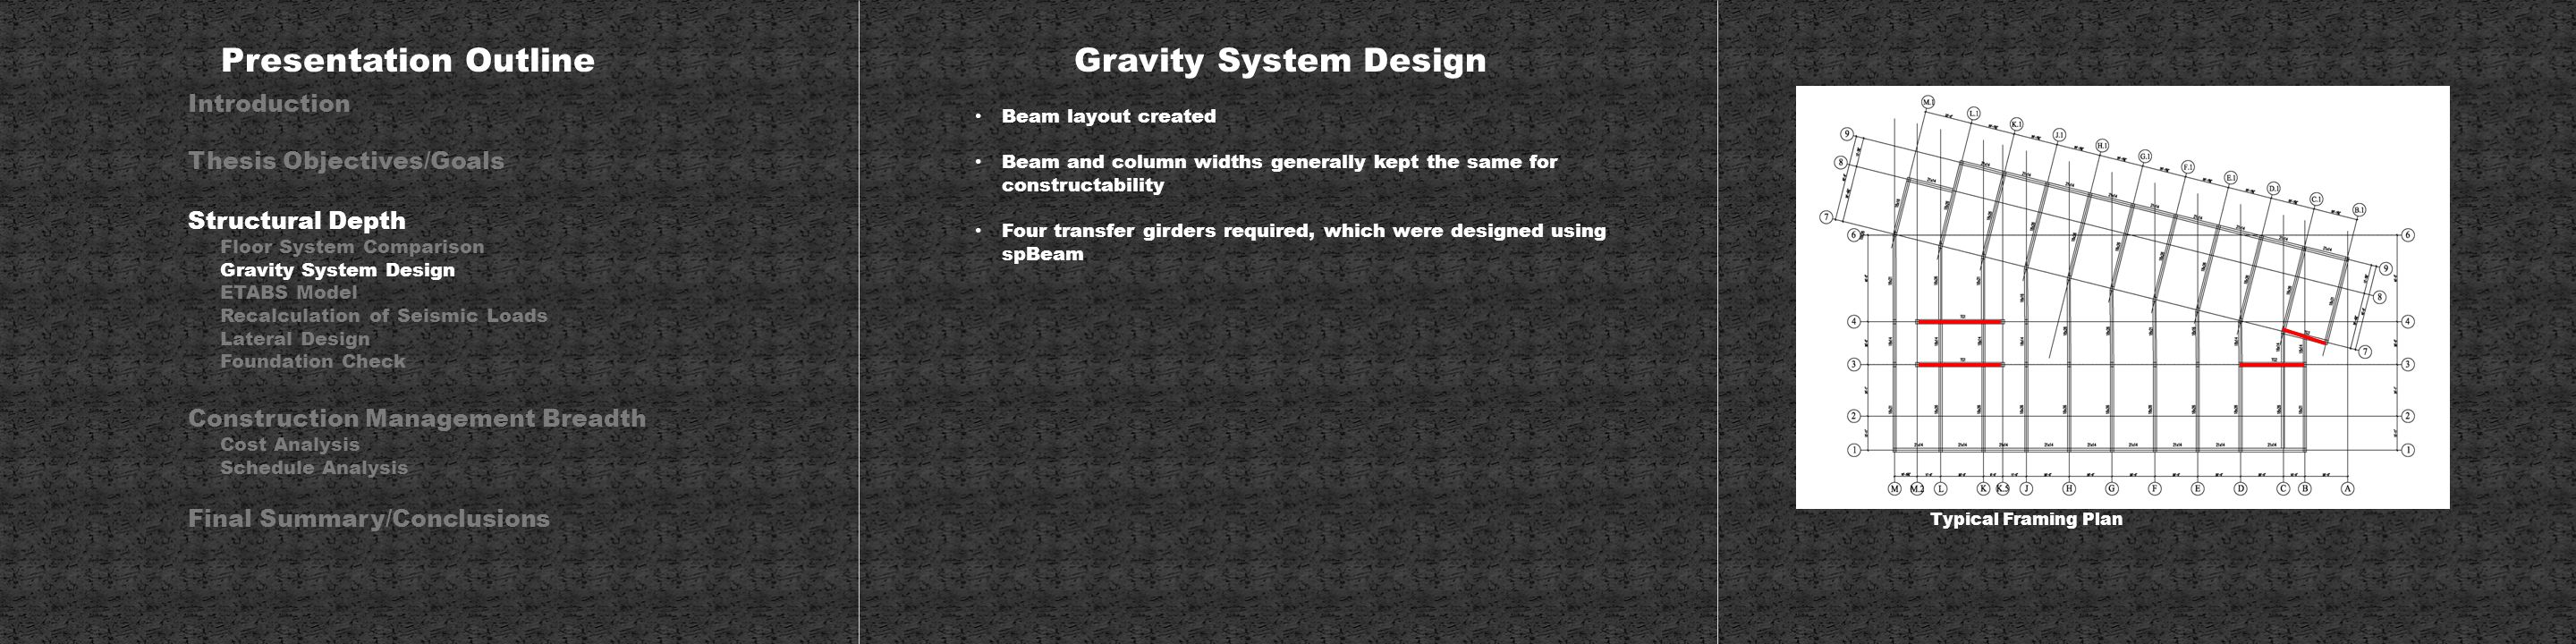 Gravity System DesignPresentation Outline Introduction Thesis Objectives/Goals Structural Depth Floor System Comparison Gravity System Design ETABS Model Recalculation of Seismic Loads Lateral Design Foundation Check Construction Management Breadth Cost Analysis Schedule Analysis Final Summary/Conclusions Beam layout created Beam and column widths generally kept the same for constructability Four transfer girders required, which were designed using spBeam Typical Framing Plan